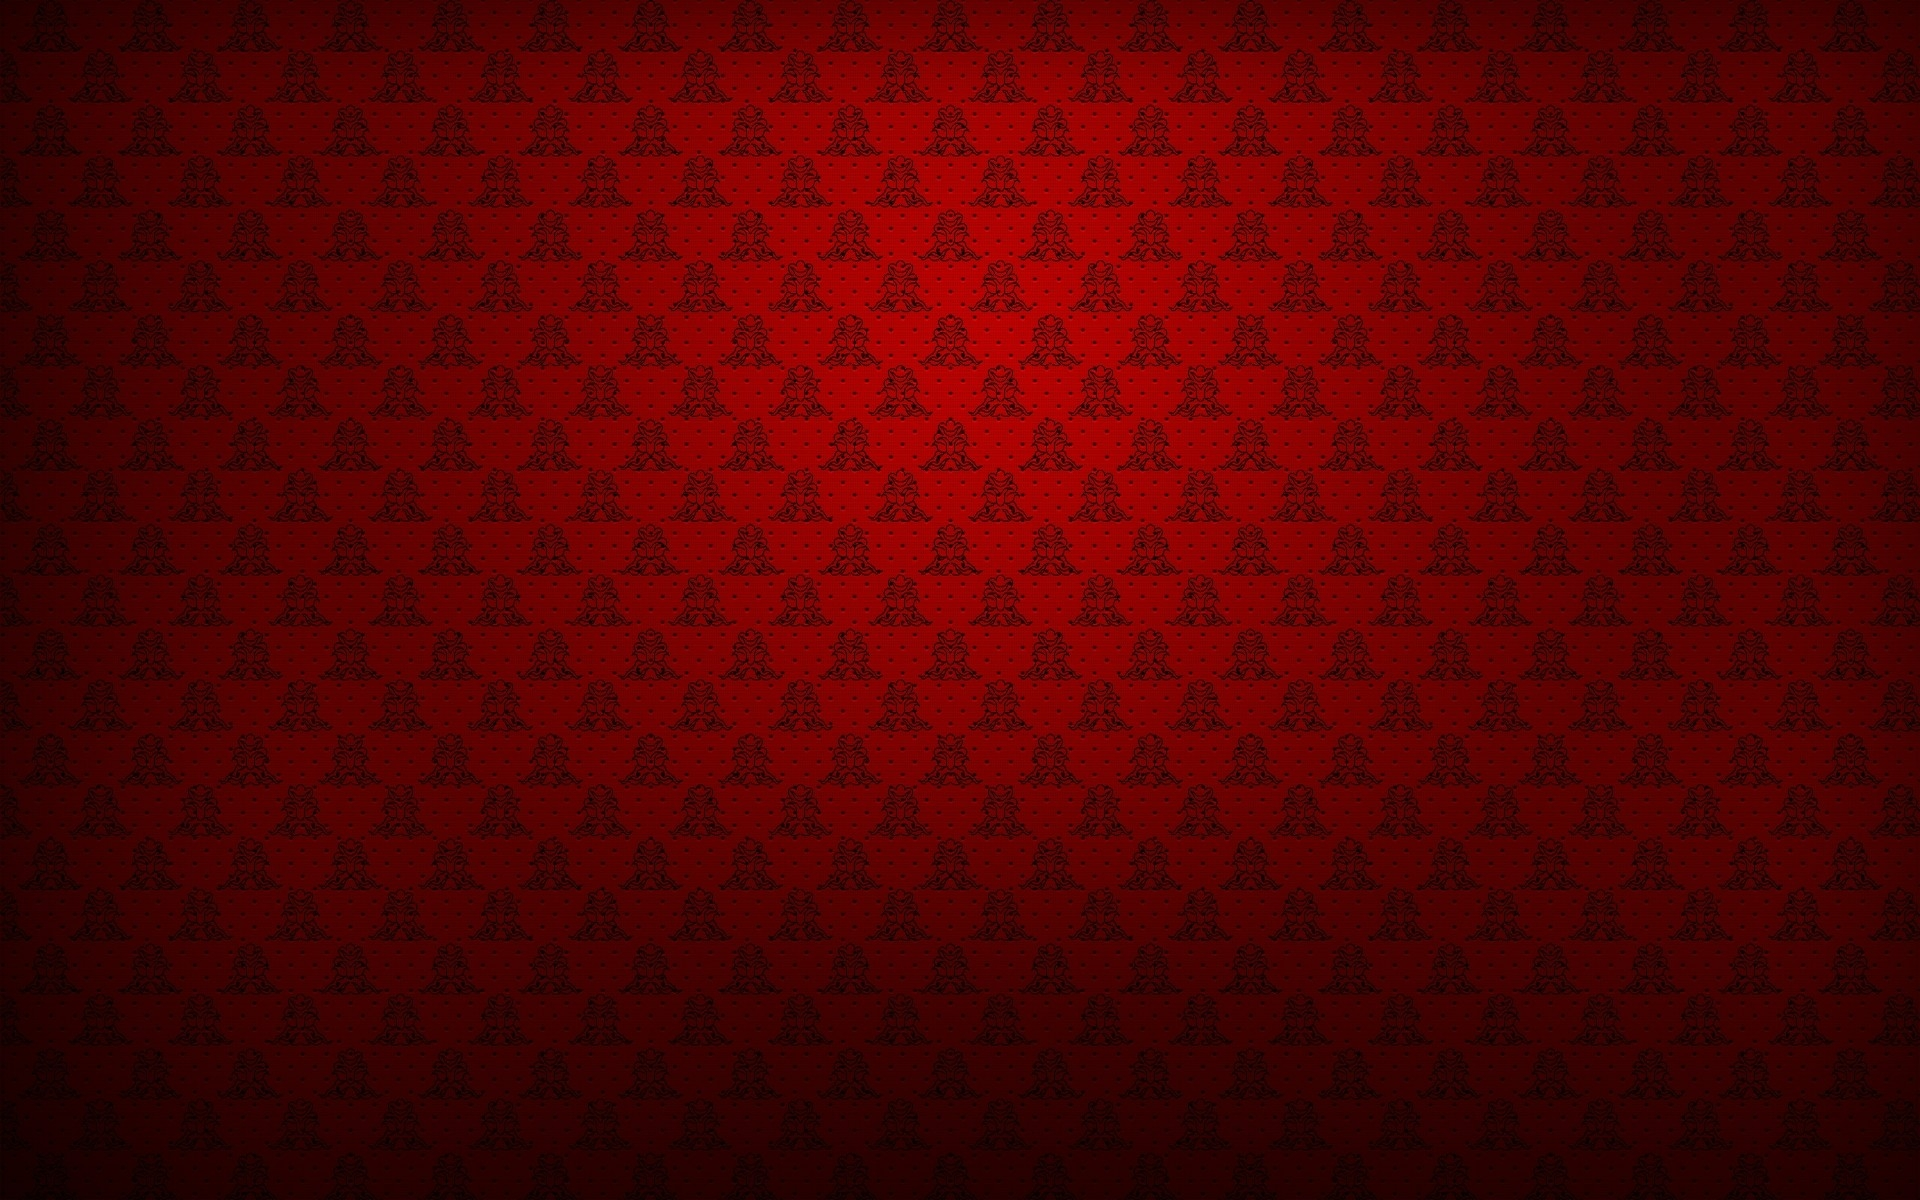 Best-new-background-patterns-Red-Patterns-1920-Red-Patterns-Background-Imageif-thr-wallpaper-wp3403187